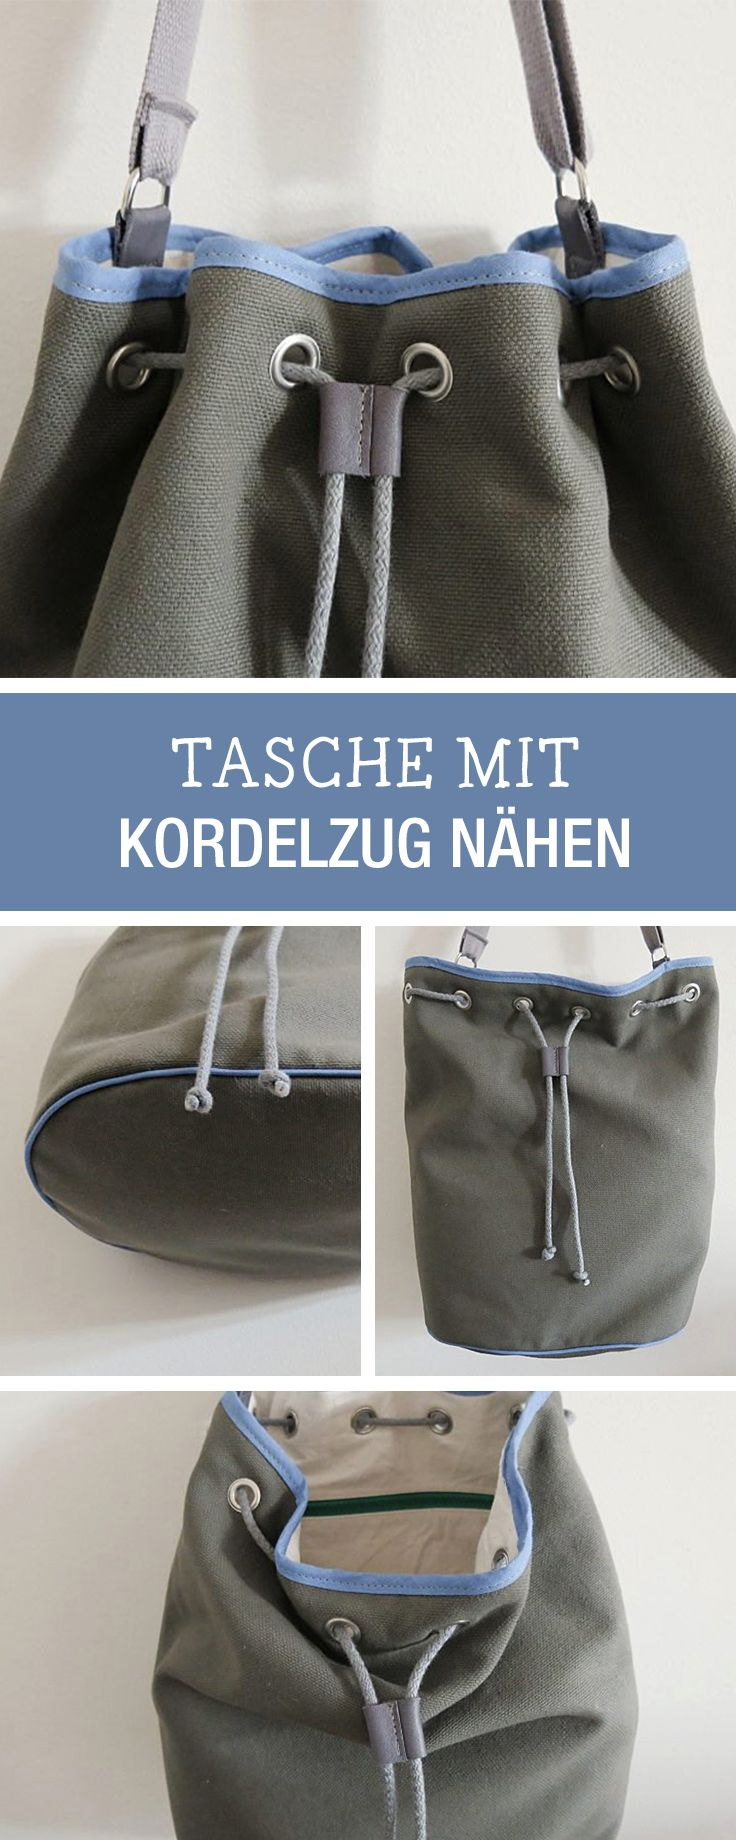 "DIY-Nähanleitung für eine angesagte ""Bucket Bag"" Tasche / diy tutorial: sew your own bucket bag via DaWanda.com"